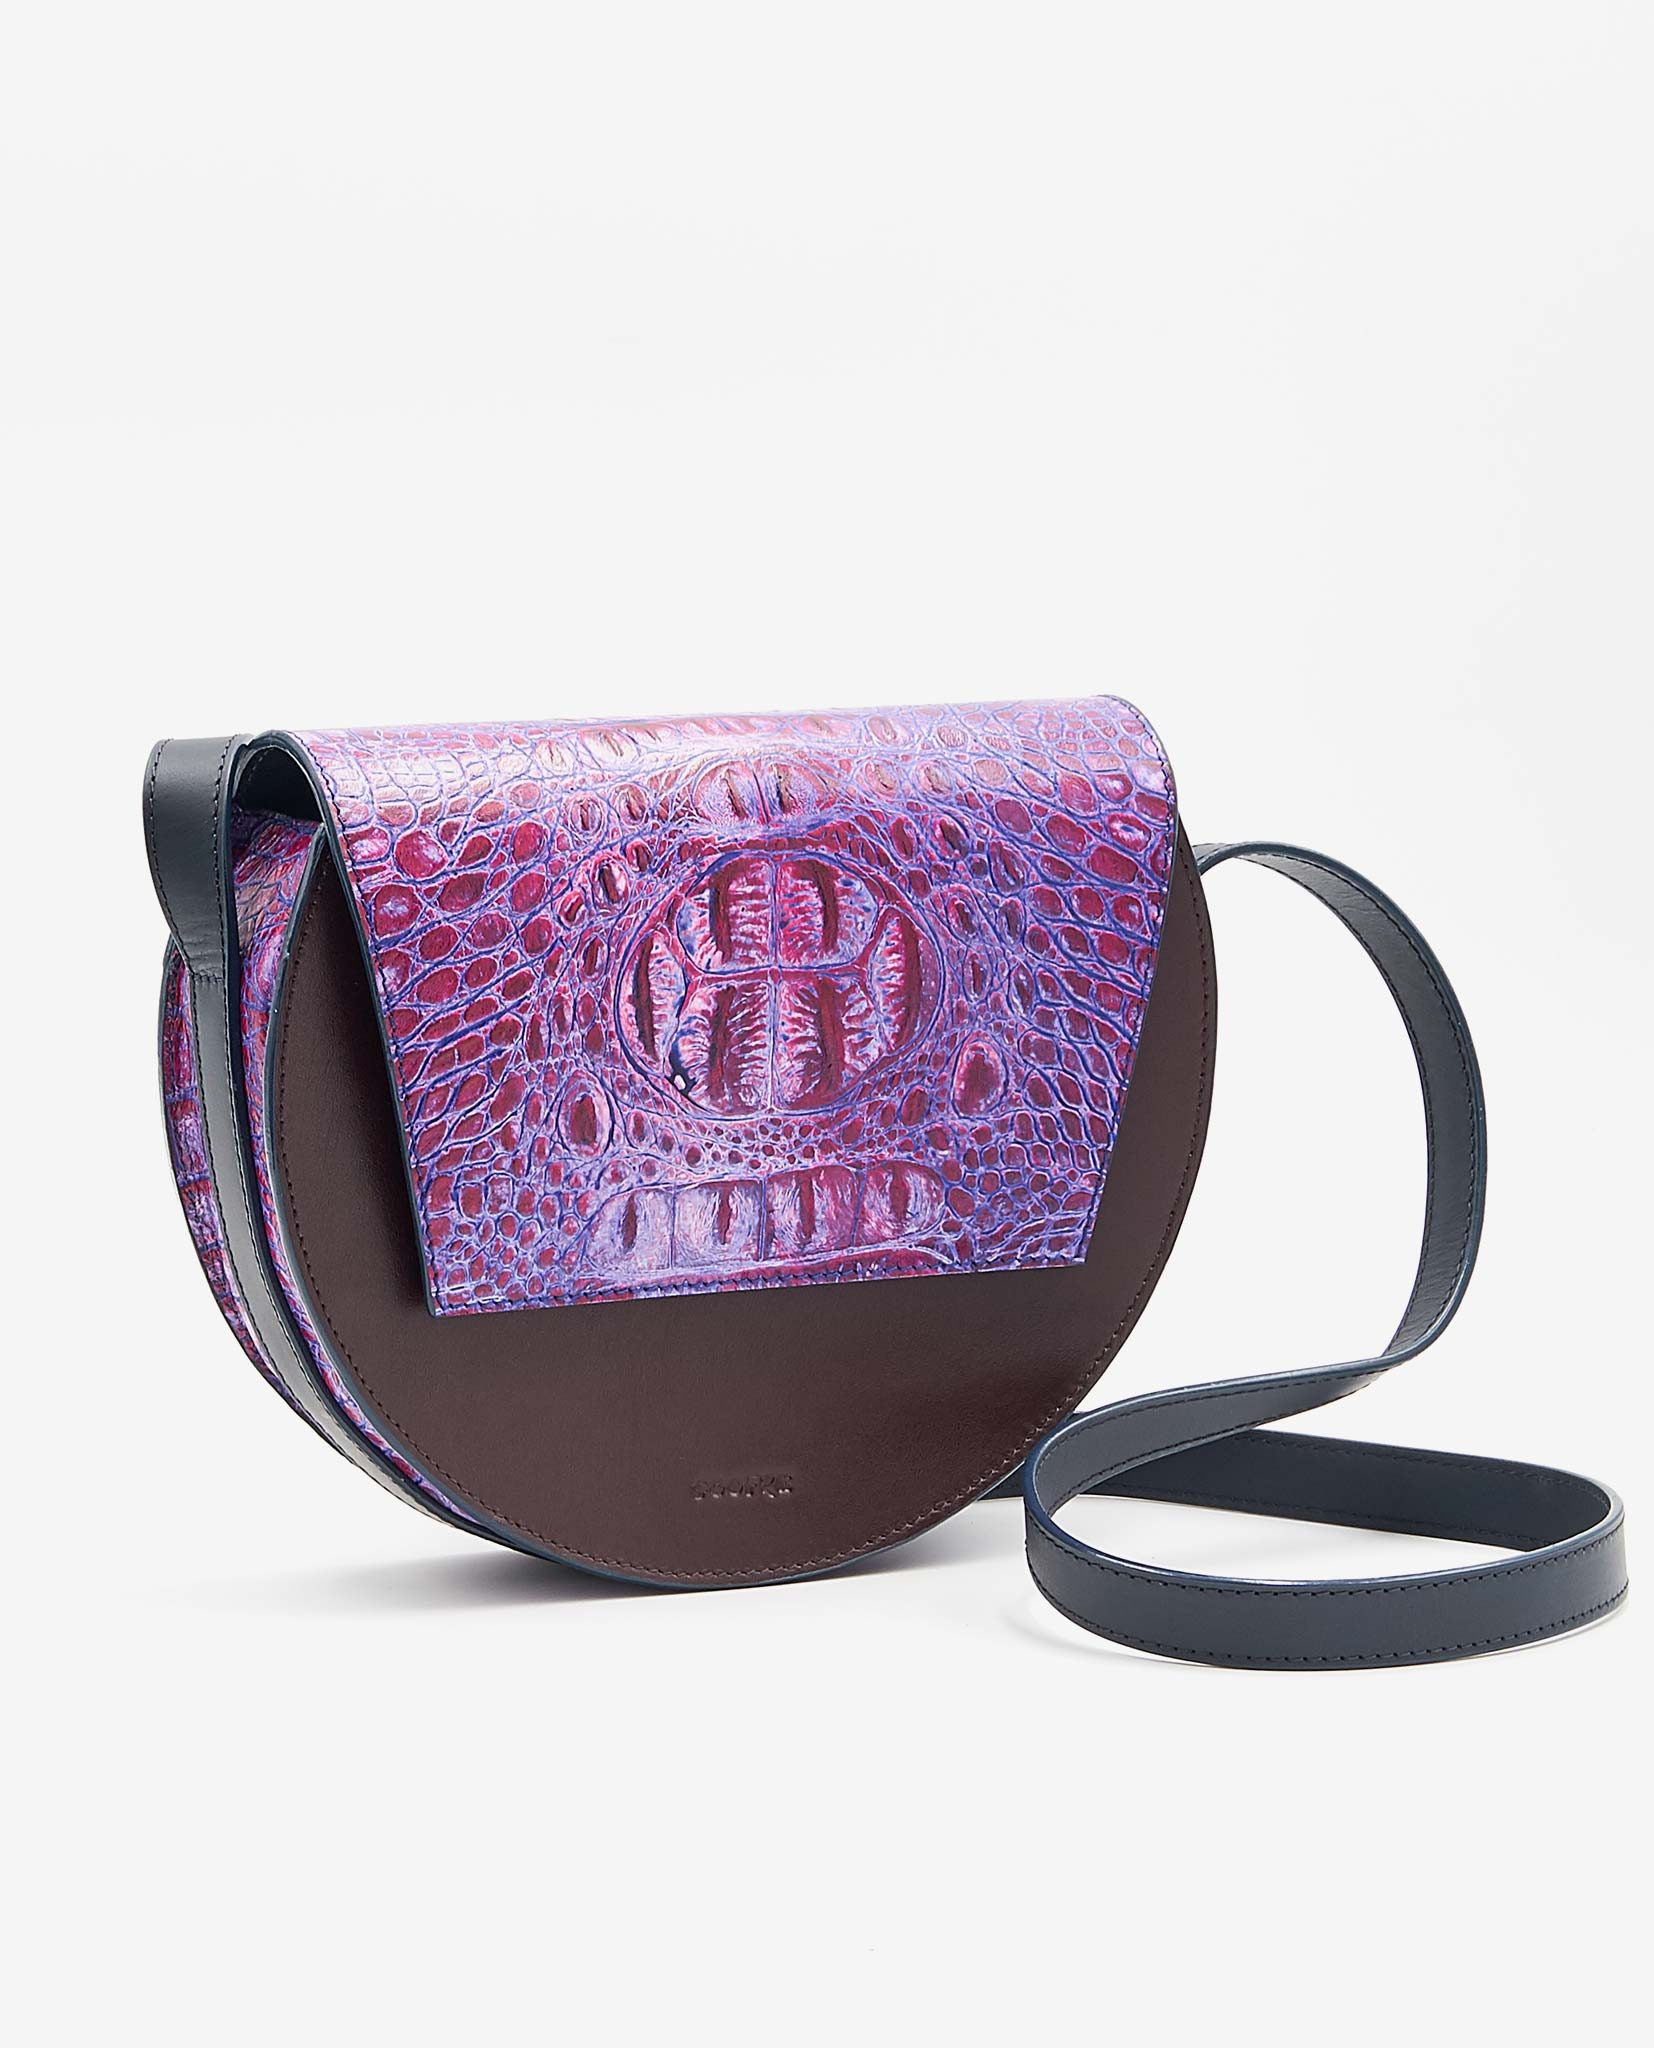 SOOFRE Berlin unique Crossbody Purse croco purple lilac burgundy